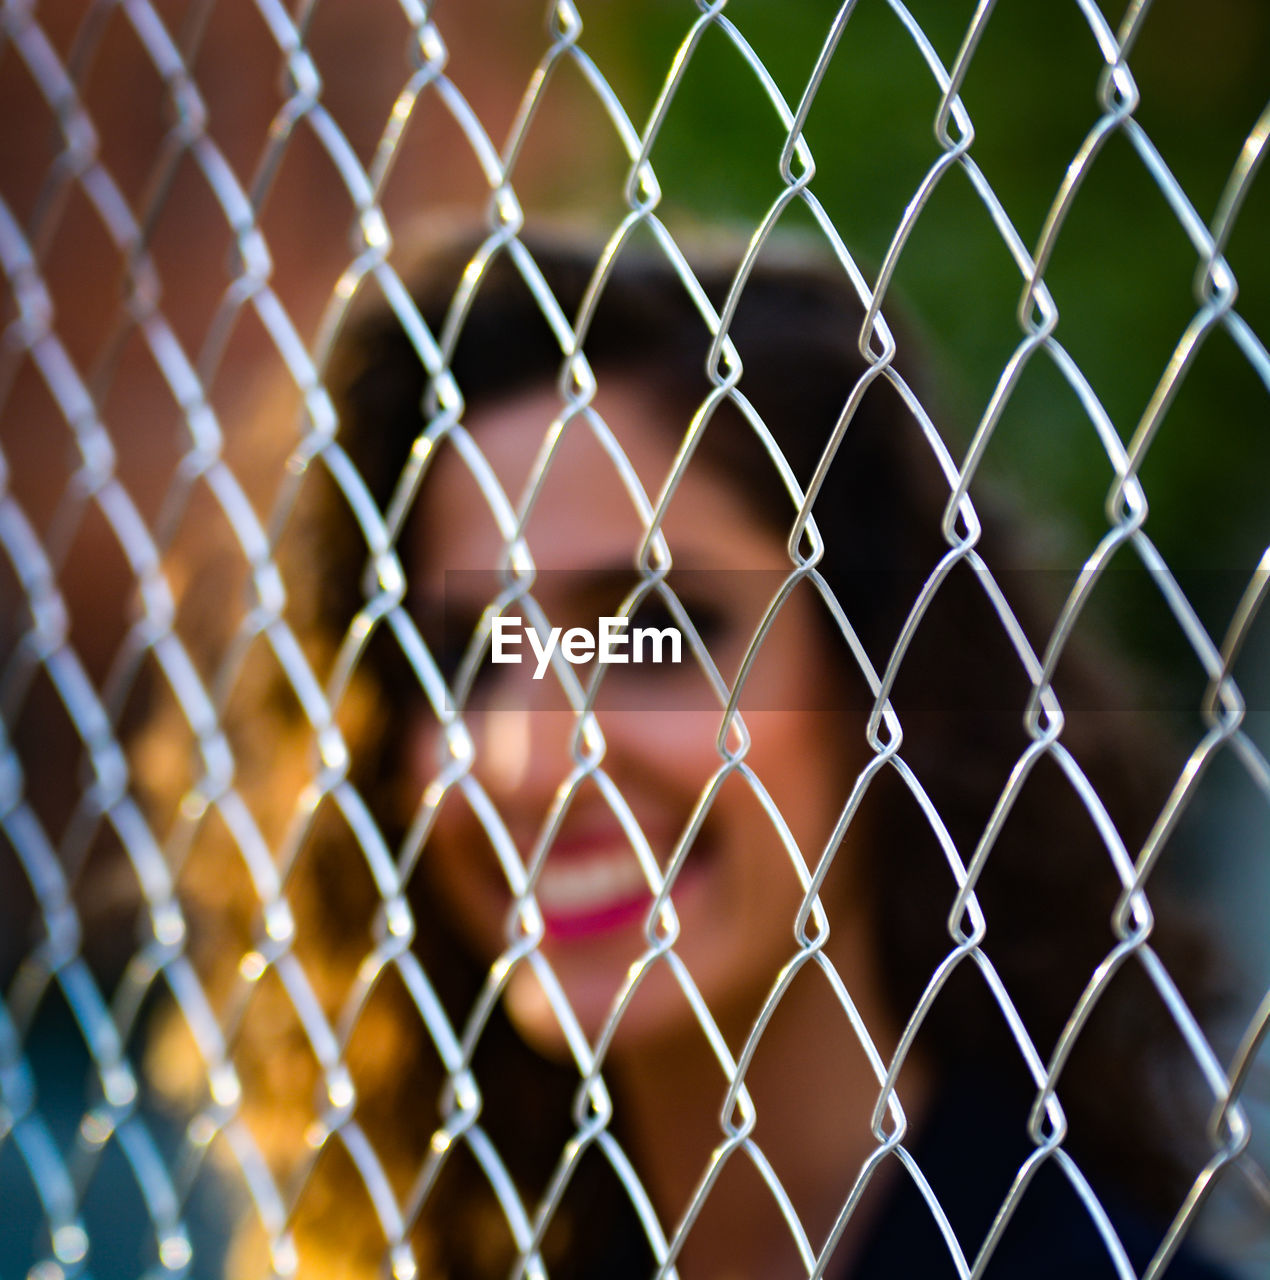 FULL FRAME SHOT OF CHAINLINK FENCE SEEN THROUGH WIRE